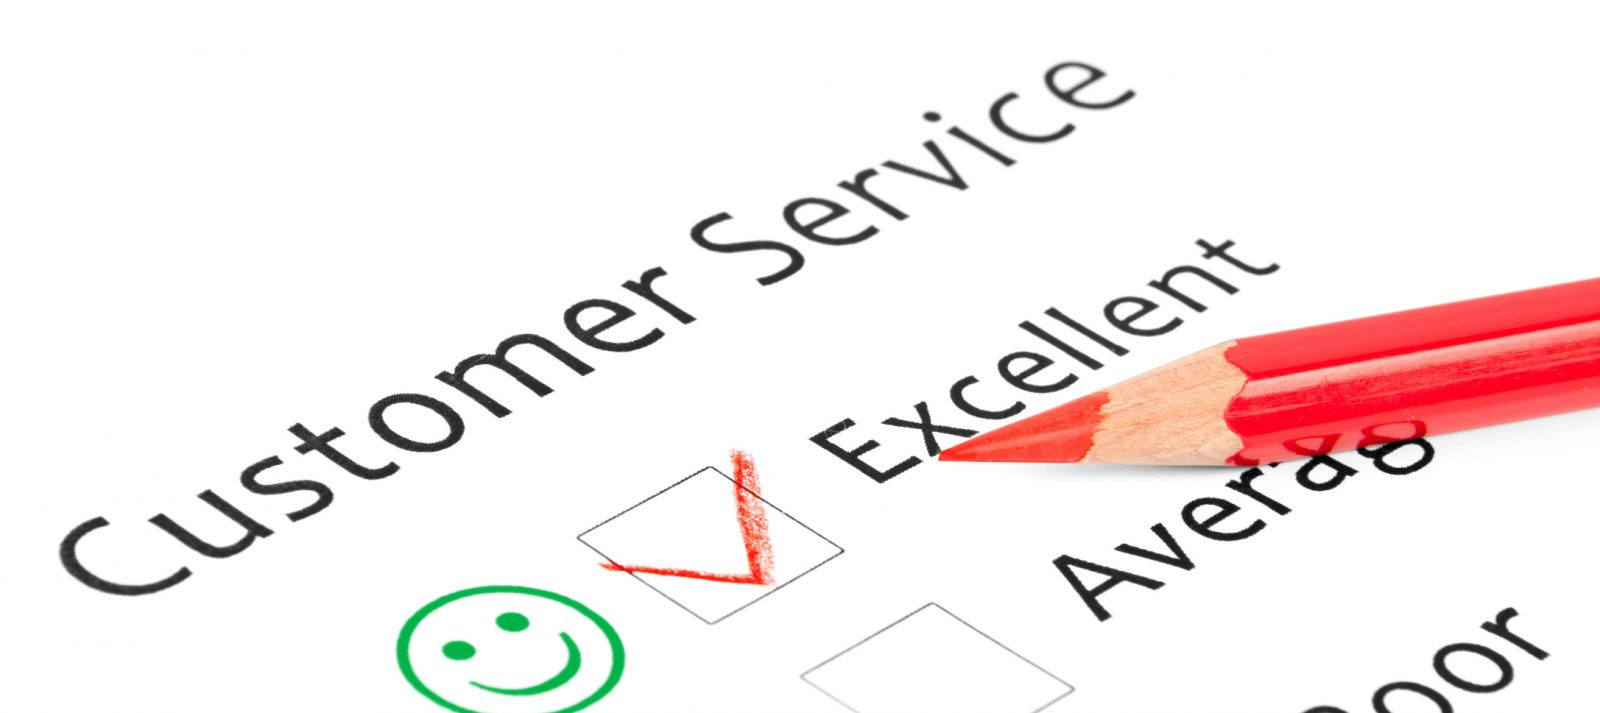 Good Customer Care costs less than Marketing